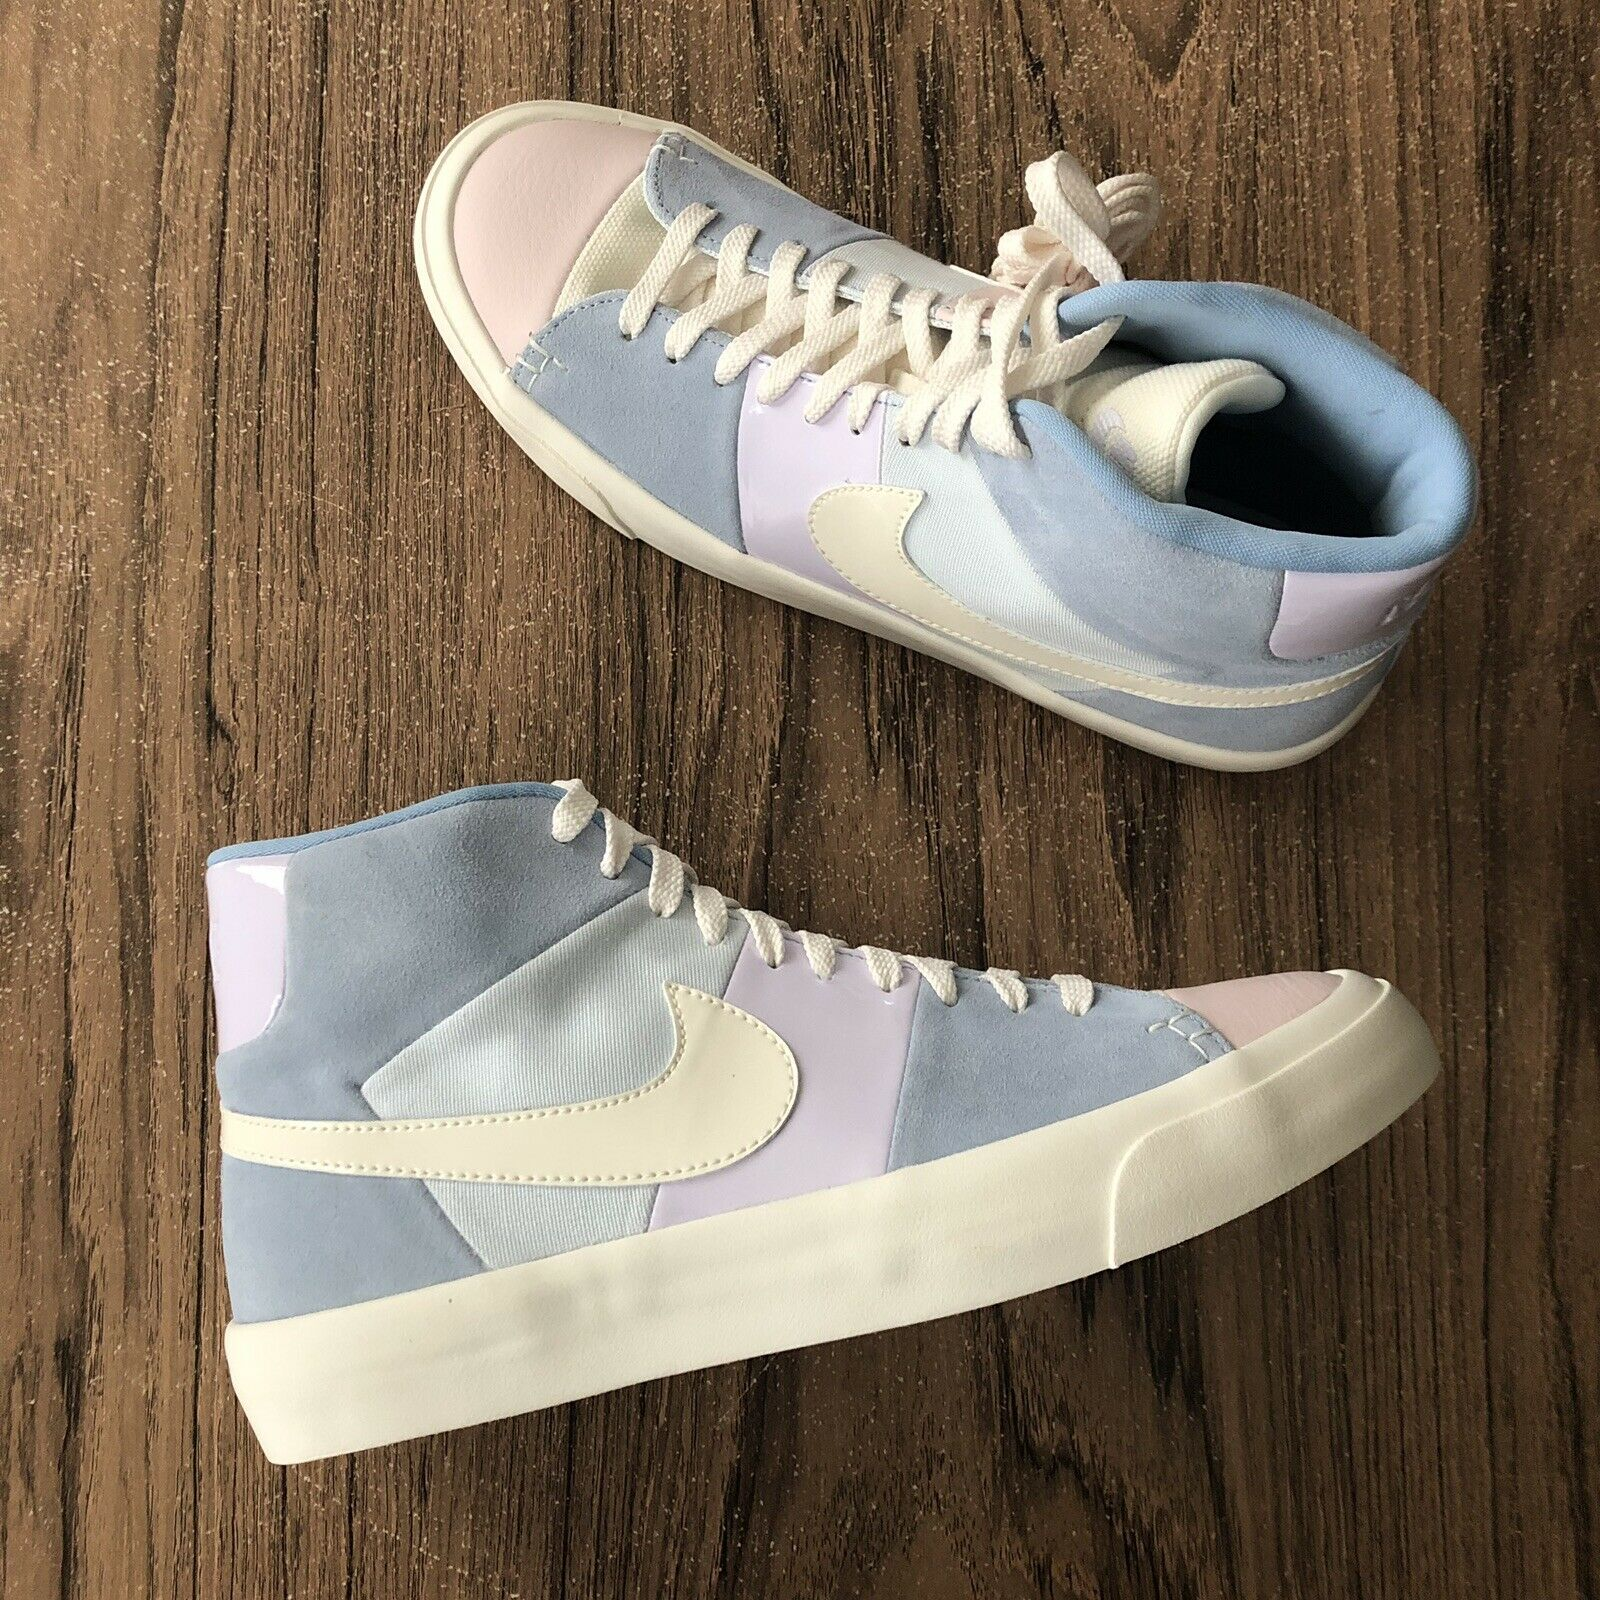 A1106G Nike Blazer Royal Easter QS AO2368-600 Size 9.5 NEW